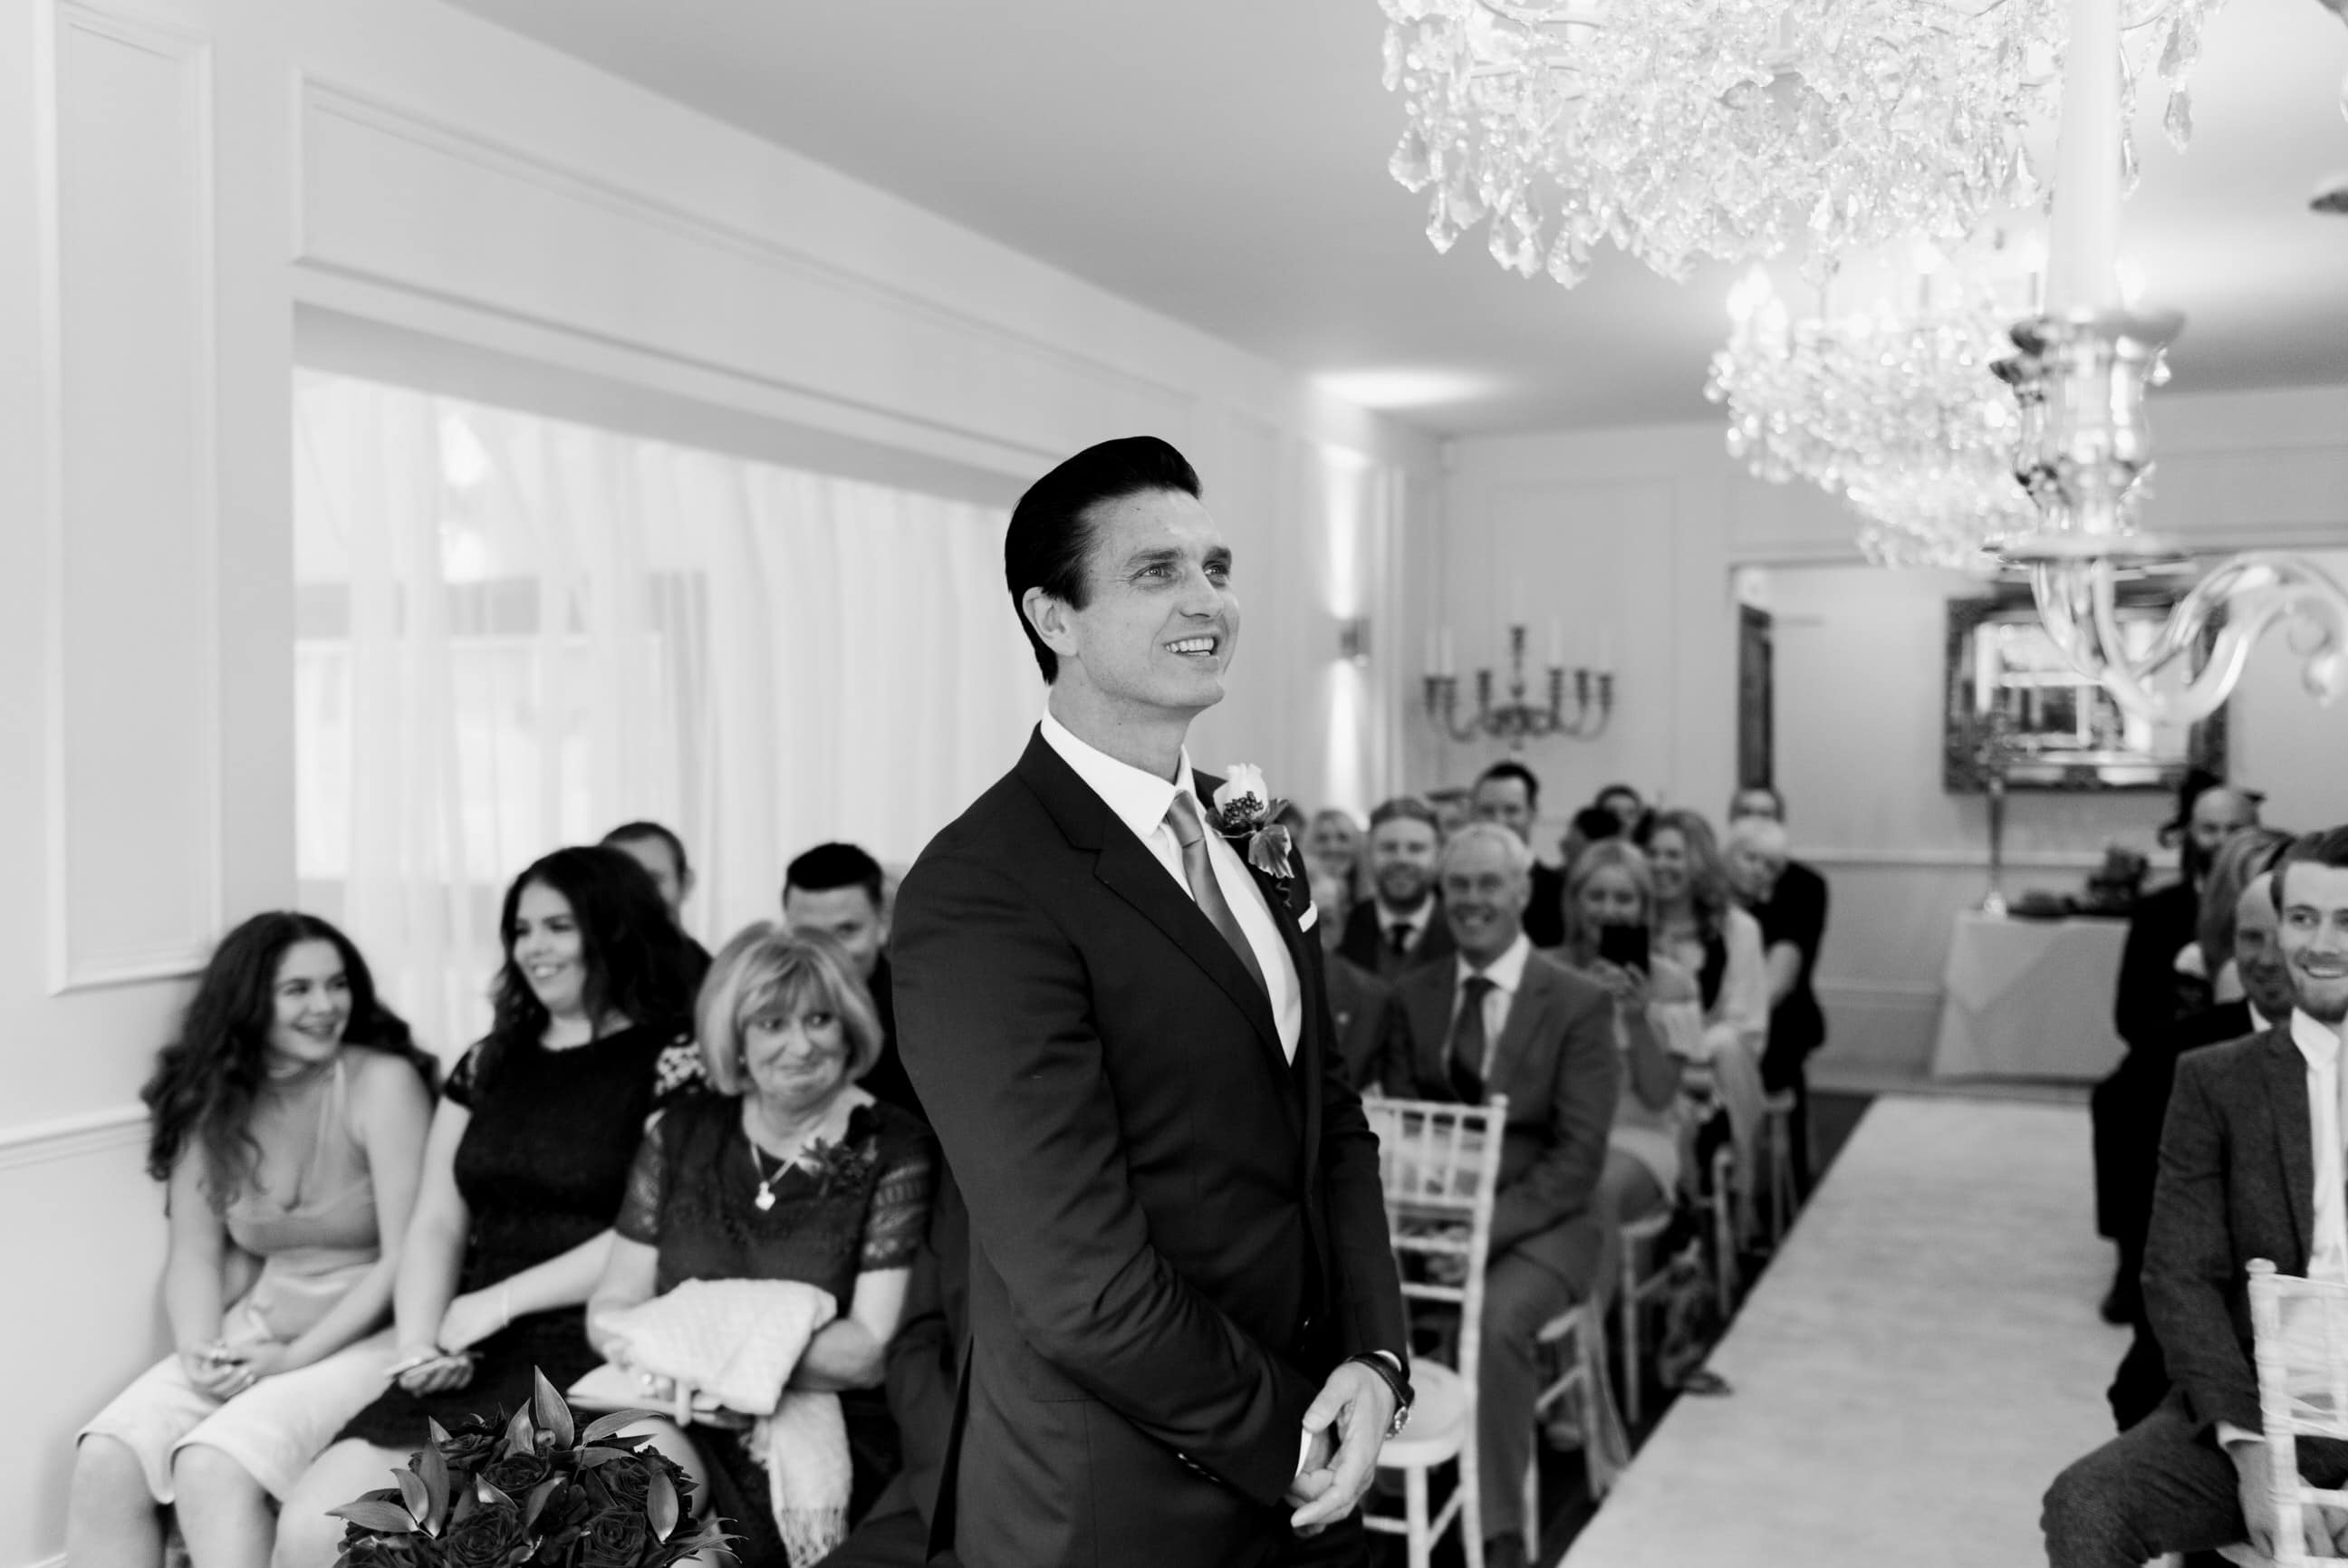 Groom waiting for bride to arrive, smiling